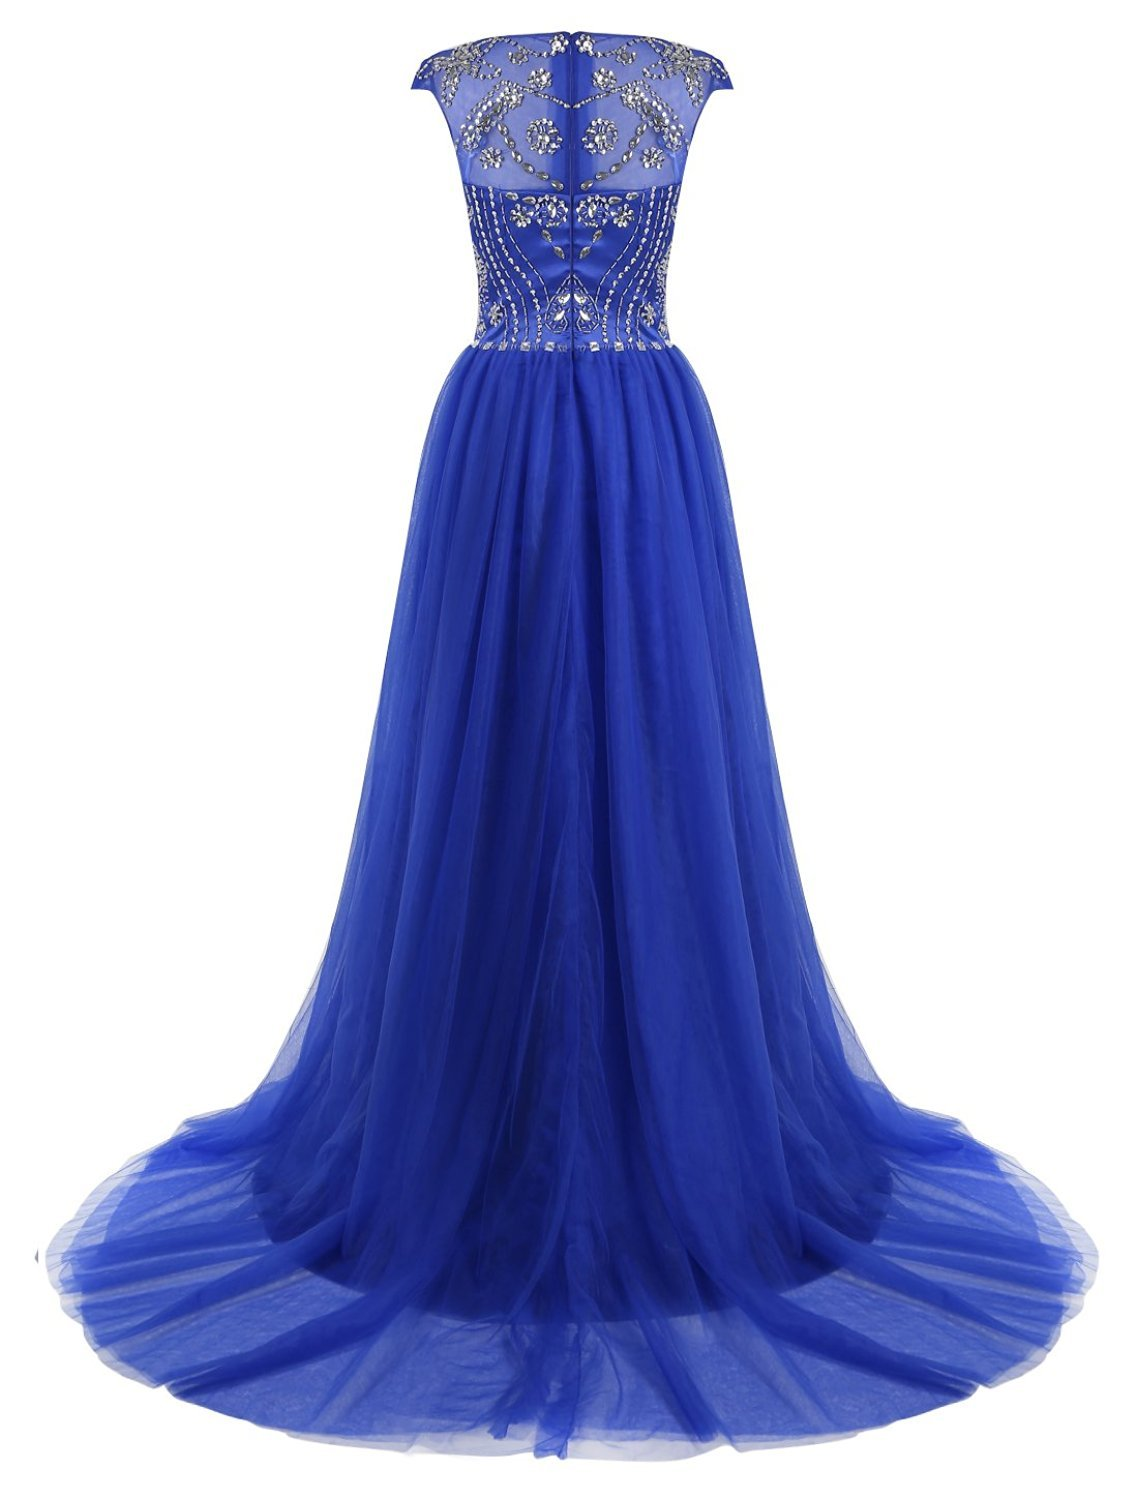 Women's Ball Gown Long Tulle Beading Prom Dress Cap Sleeves Evening Dresses 2018